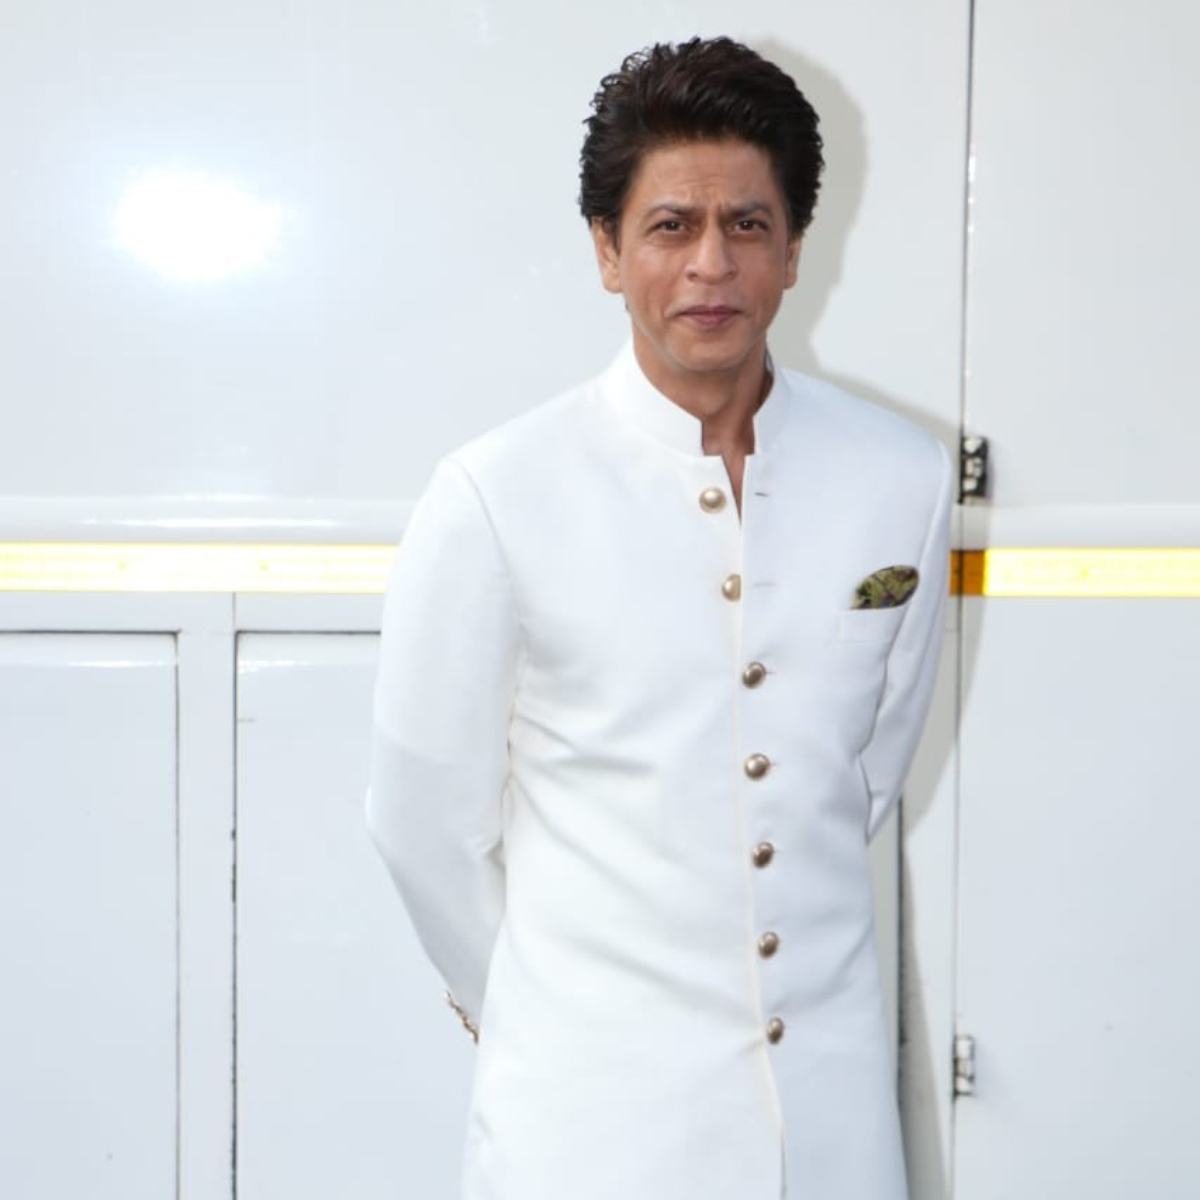 PHOTOS: Shah Rukh Khan steps out donning an all white pathani suit as he gets spotted on sets of Dance Plus 5